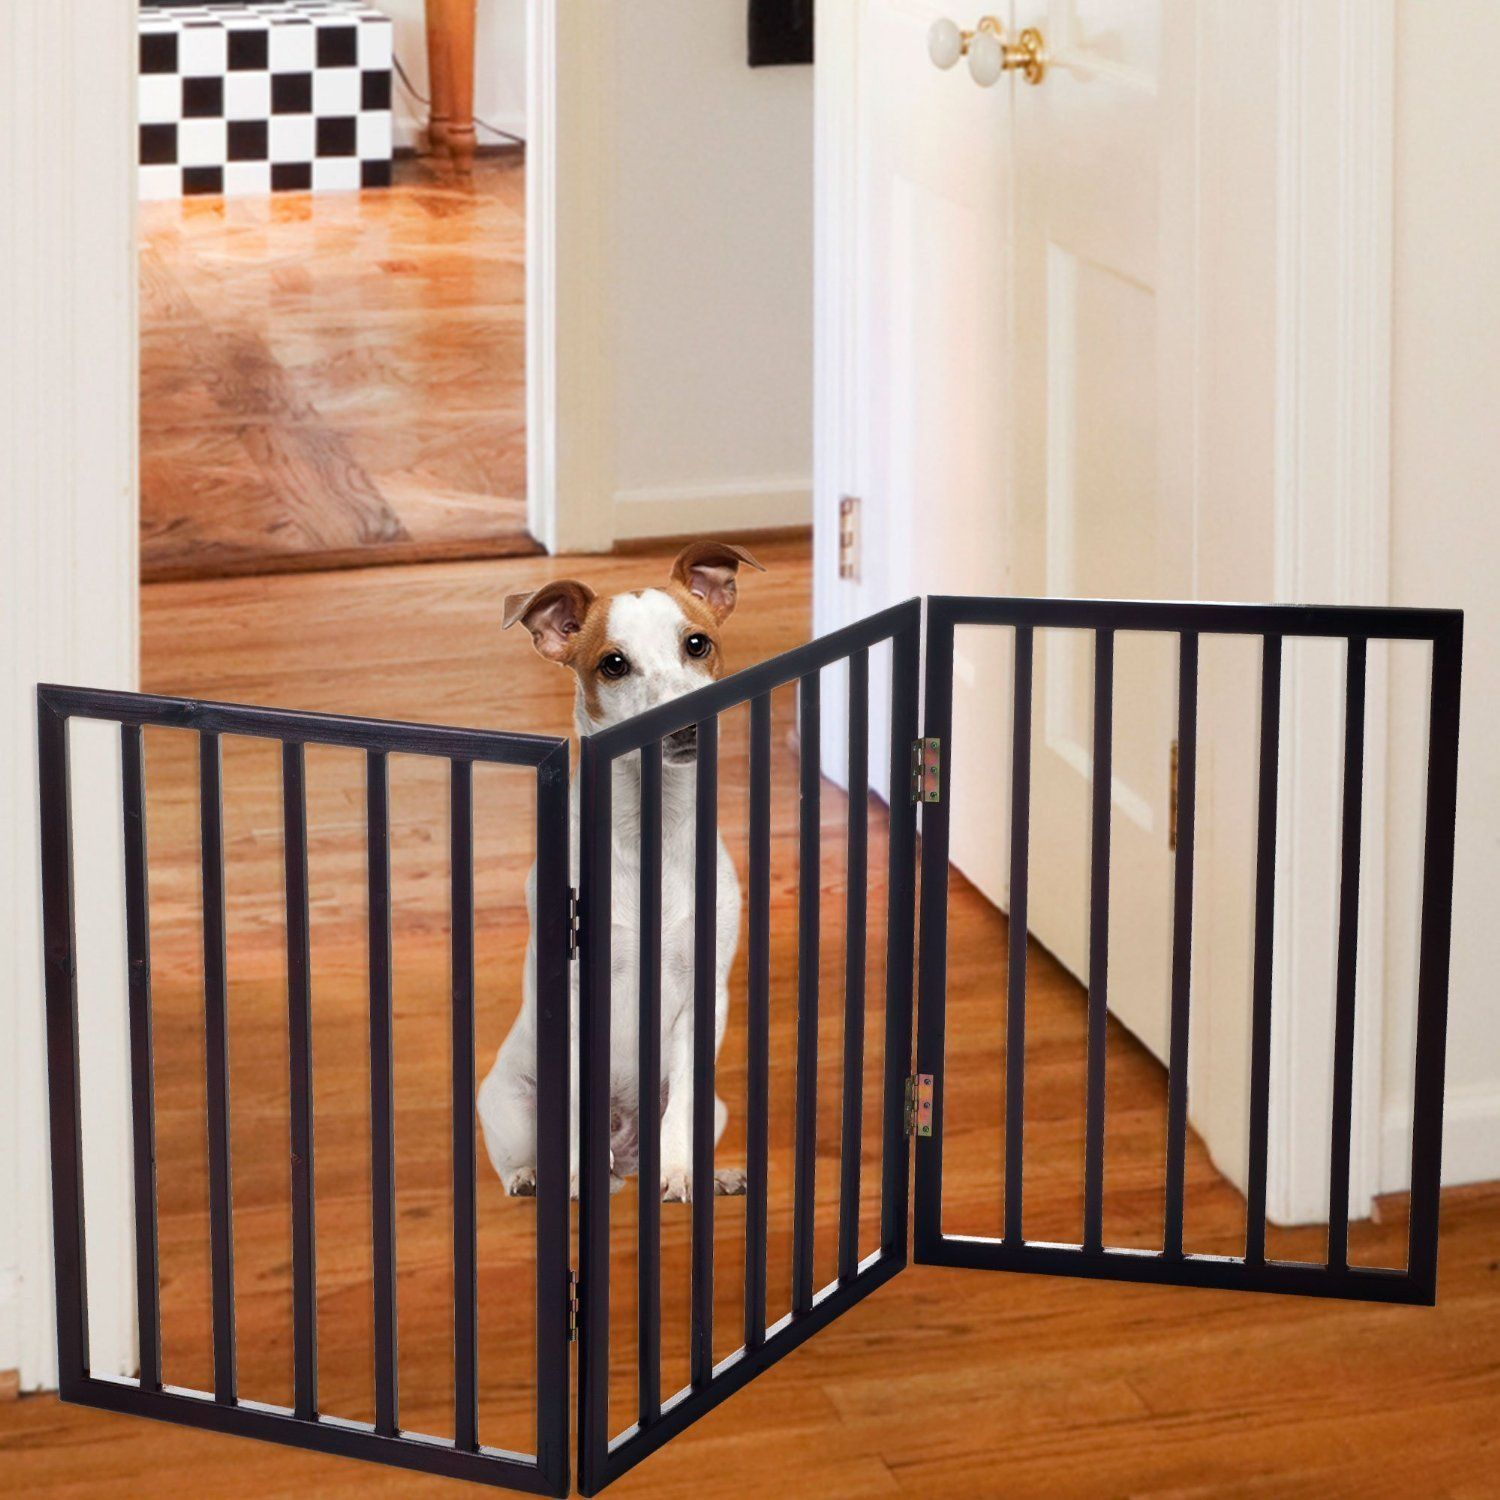 Dog Gates For The House,Dog Gates Freestanding,Dog Fences And ...